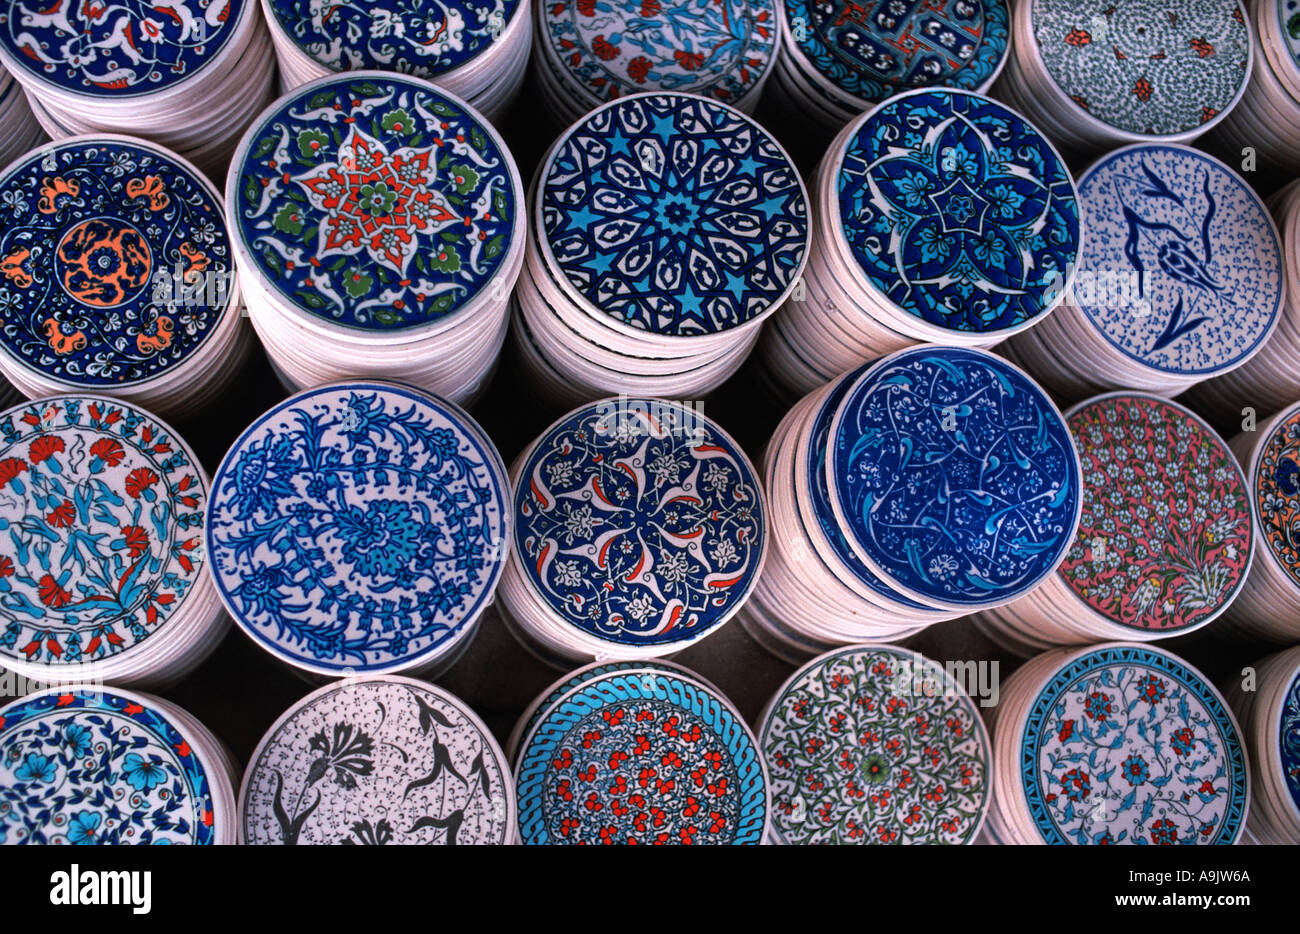 Detail of stacks of circular ceramic tiles for sale at souvenir ...